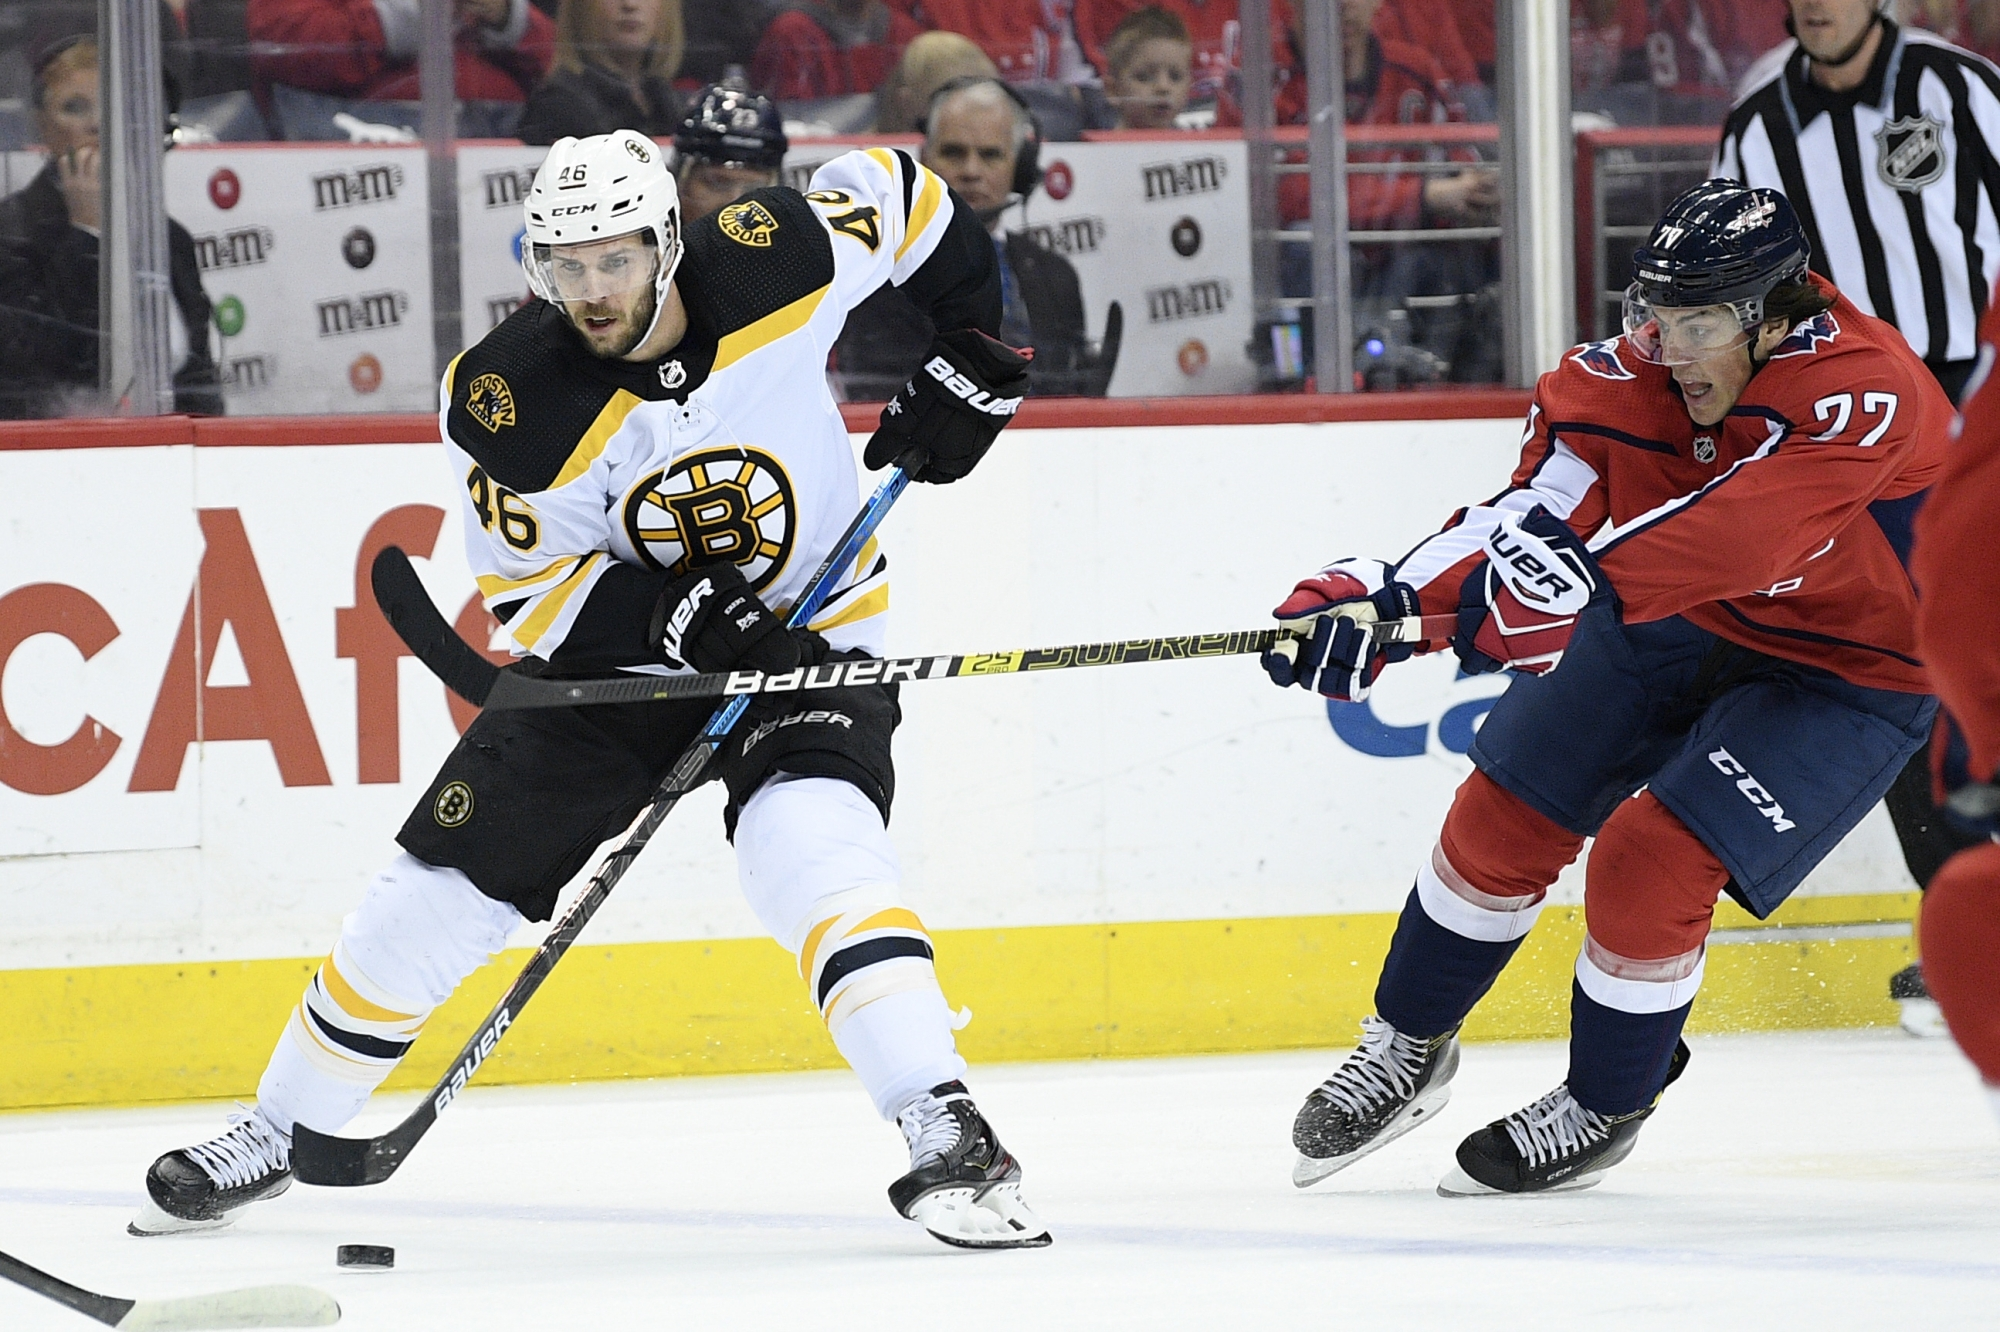 Bruins shut out Capitals to end 14-game skid vs ...Bruins News